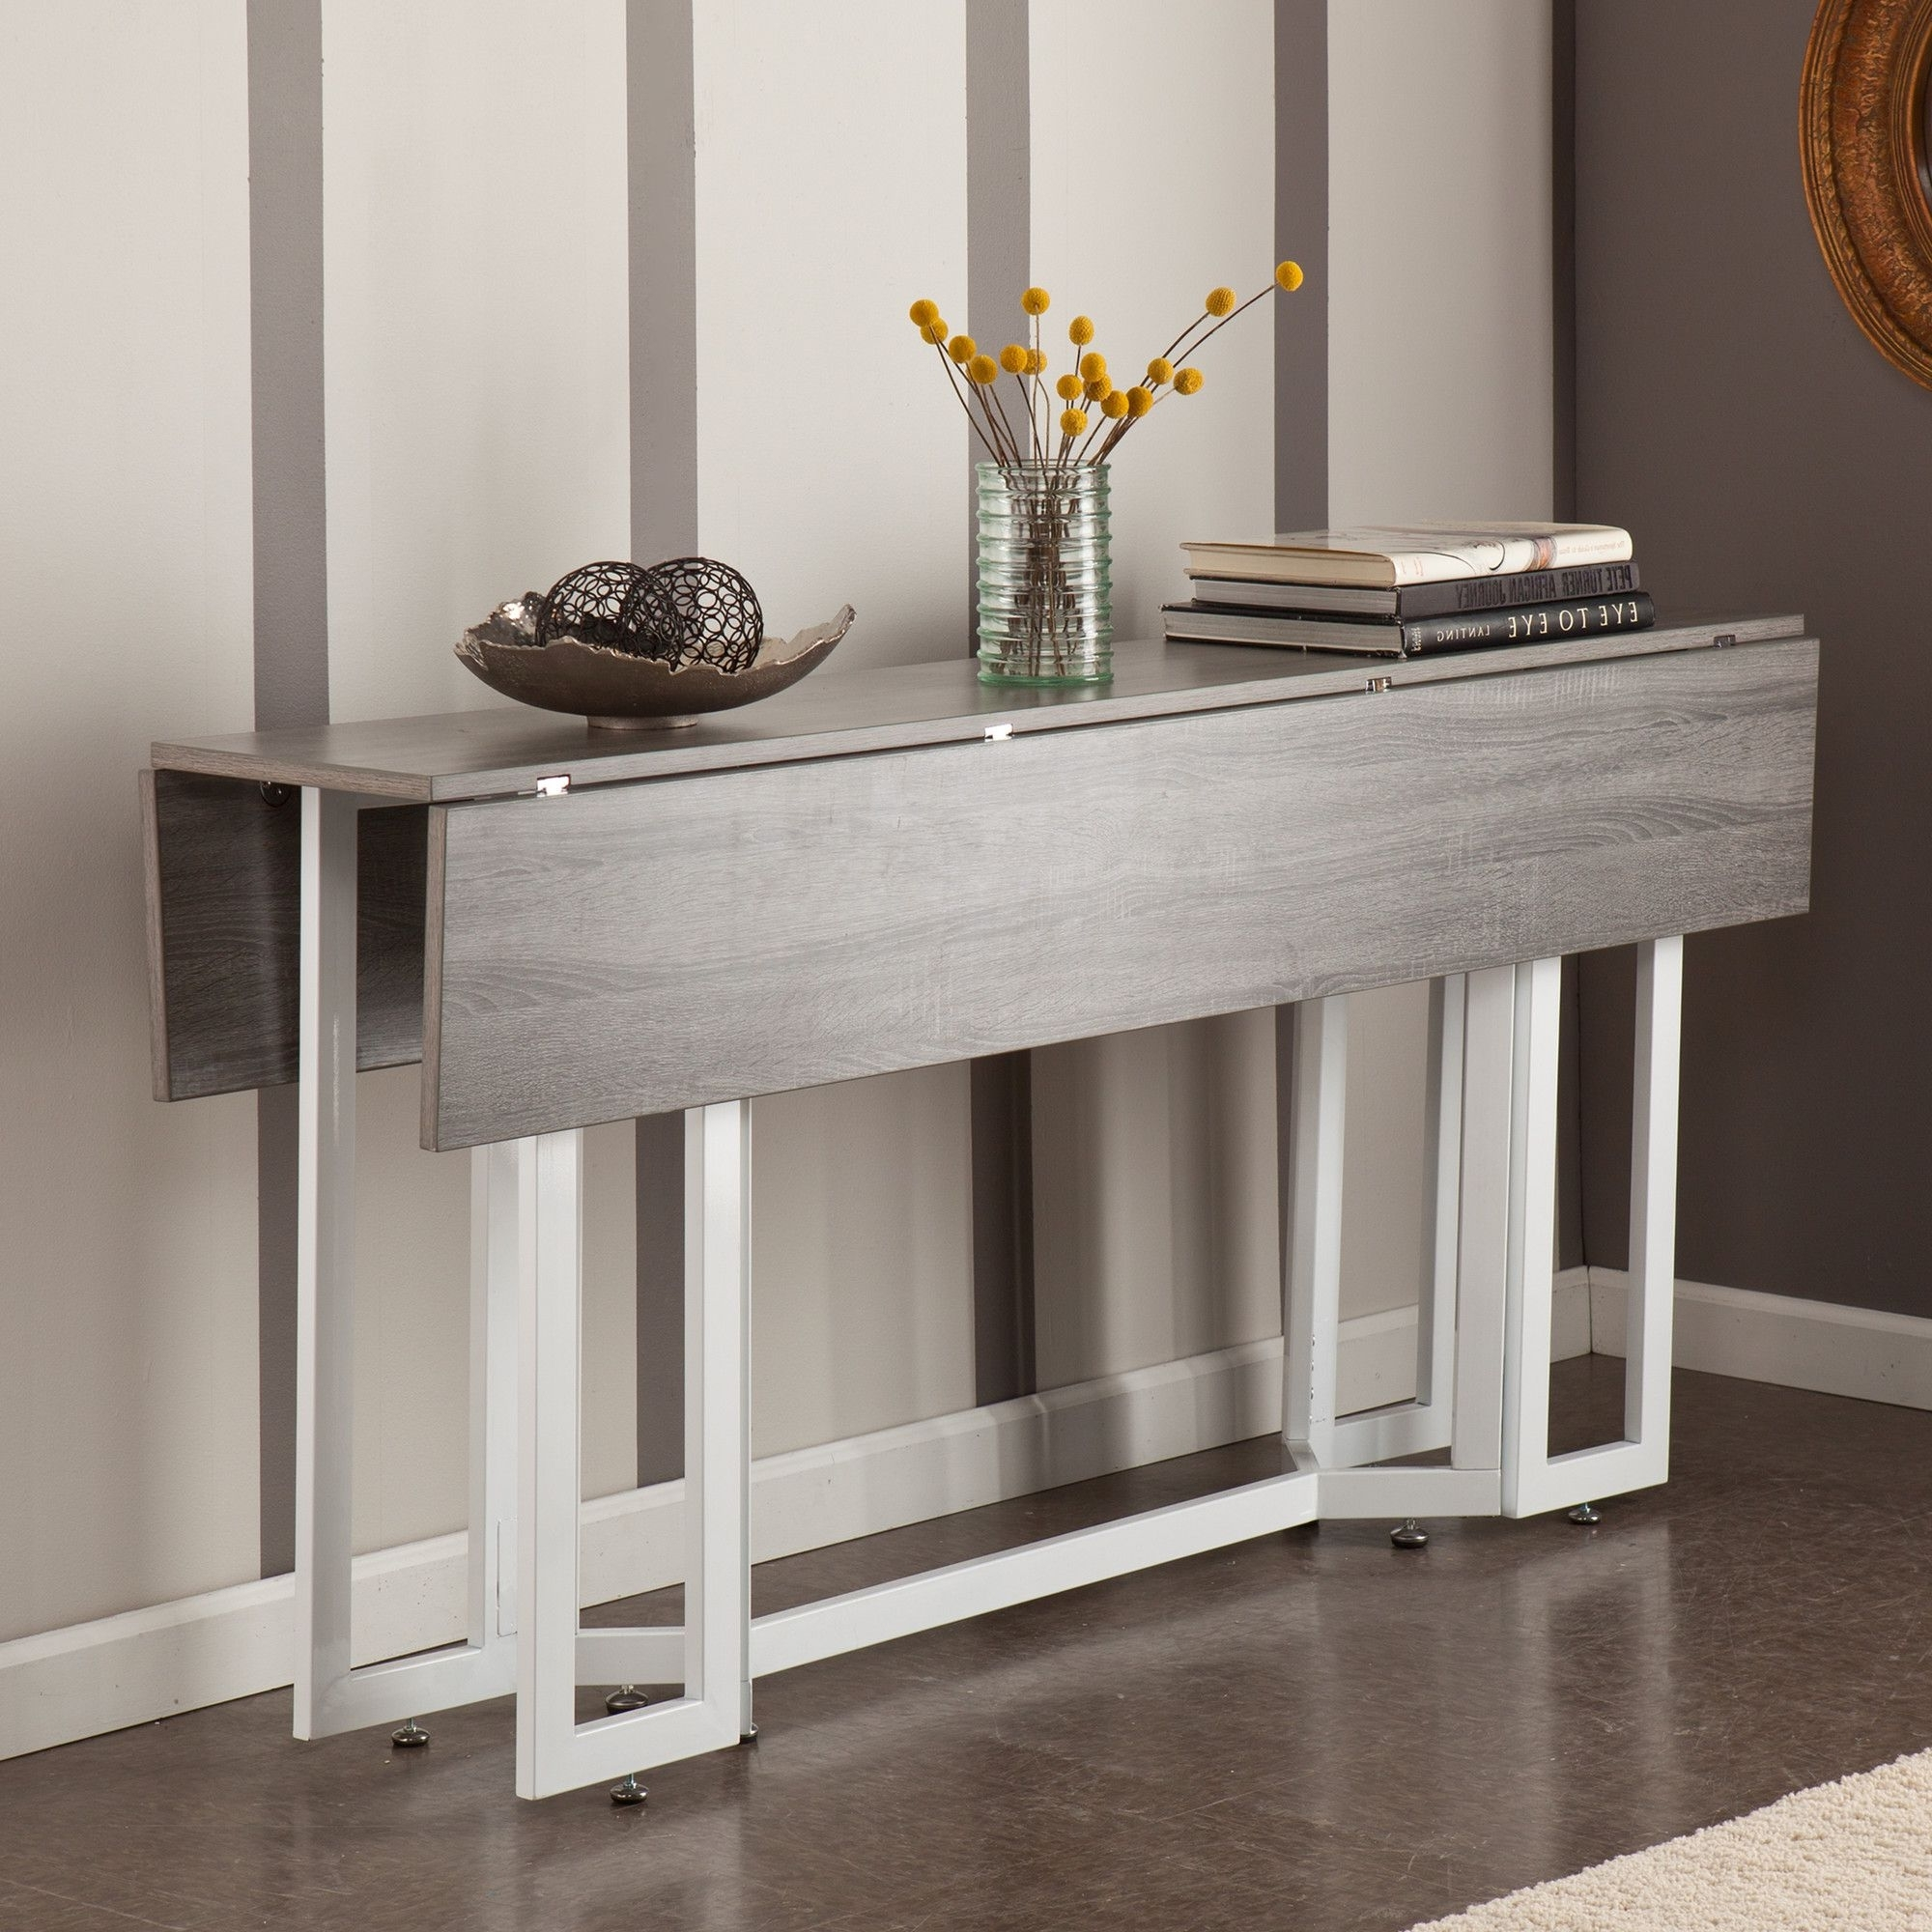 Newest Holly & Martin Driness Drop Leaf Dining / Console Table & Reviews Intended For Cheap Drop Leaf Dining Tables (Gallery 9 of 25)